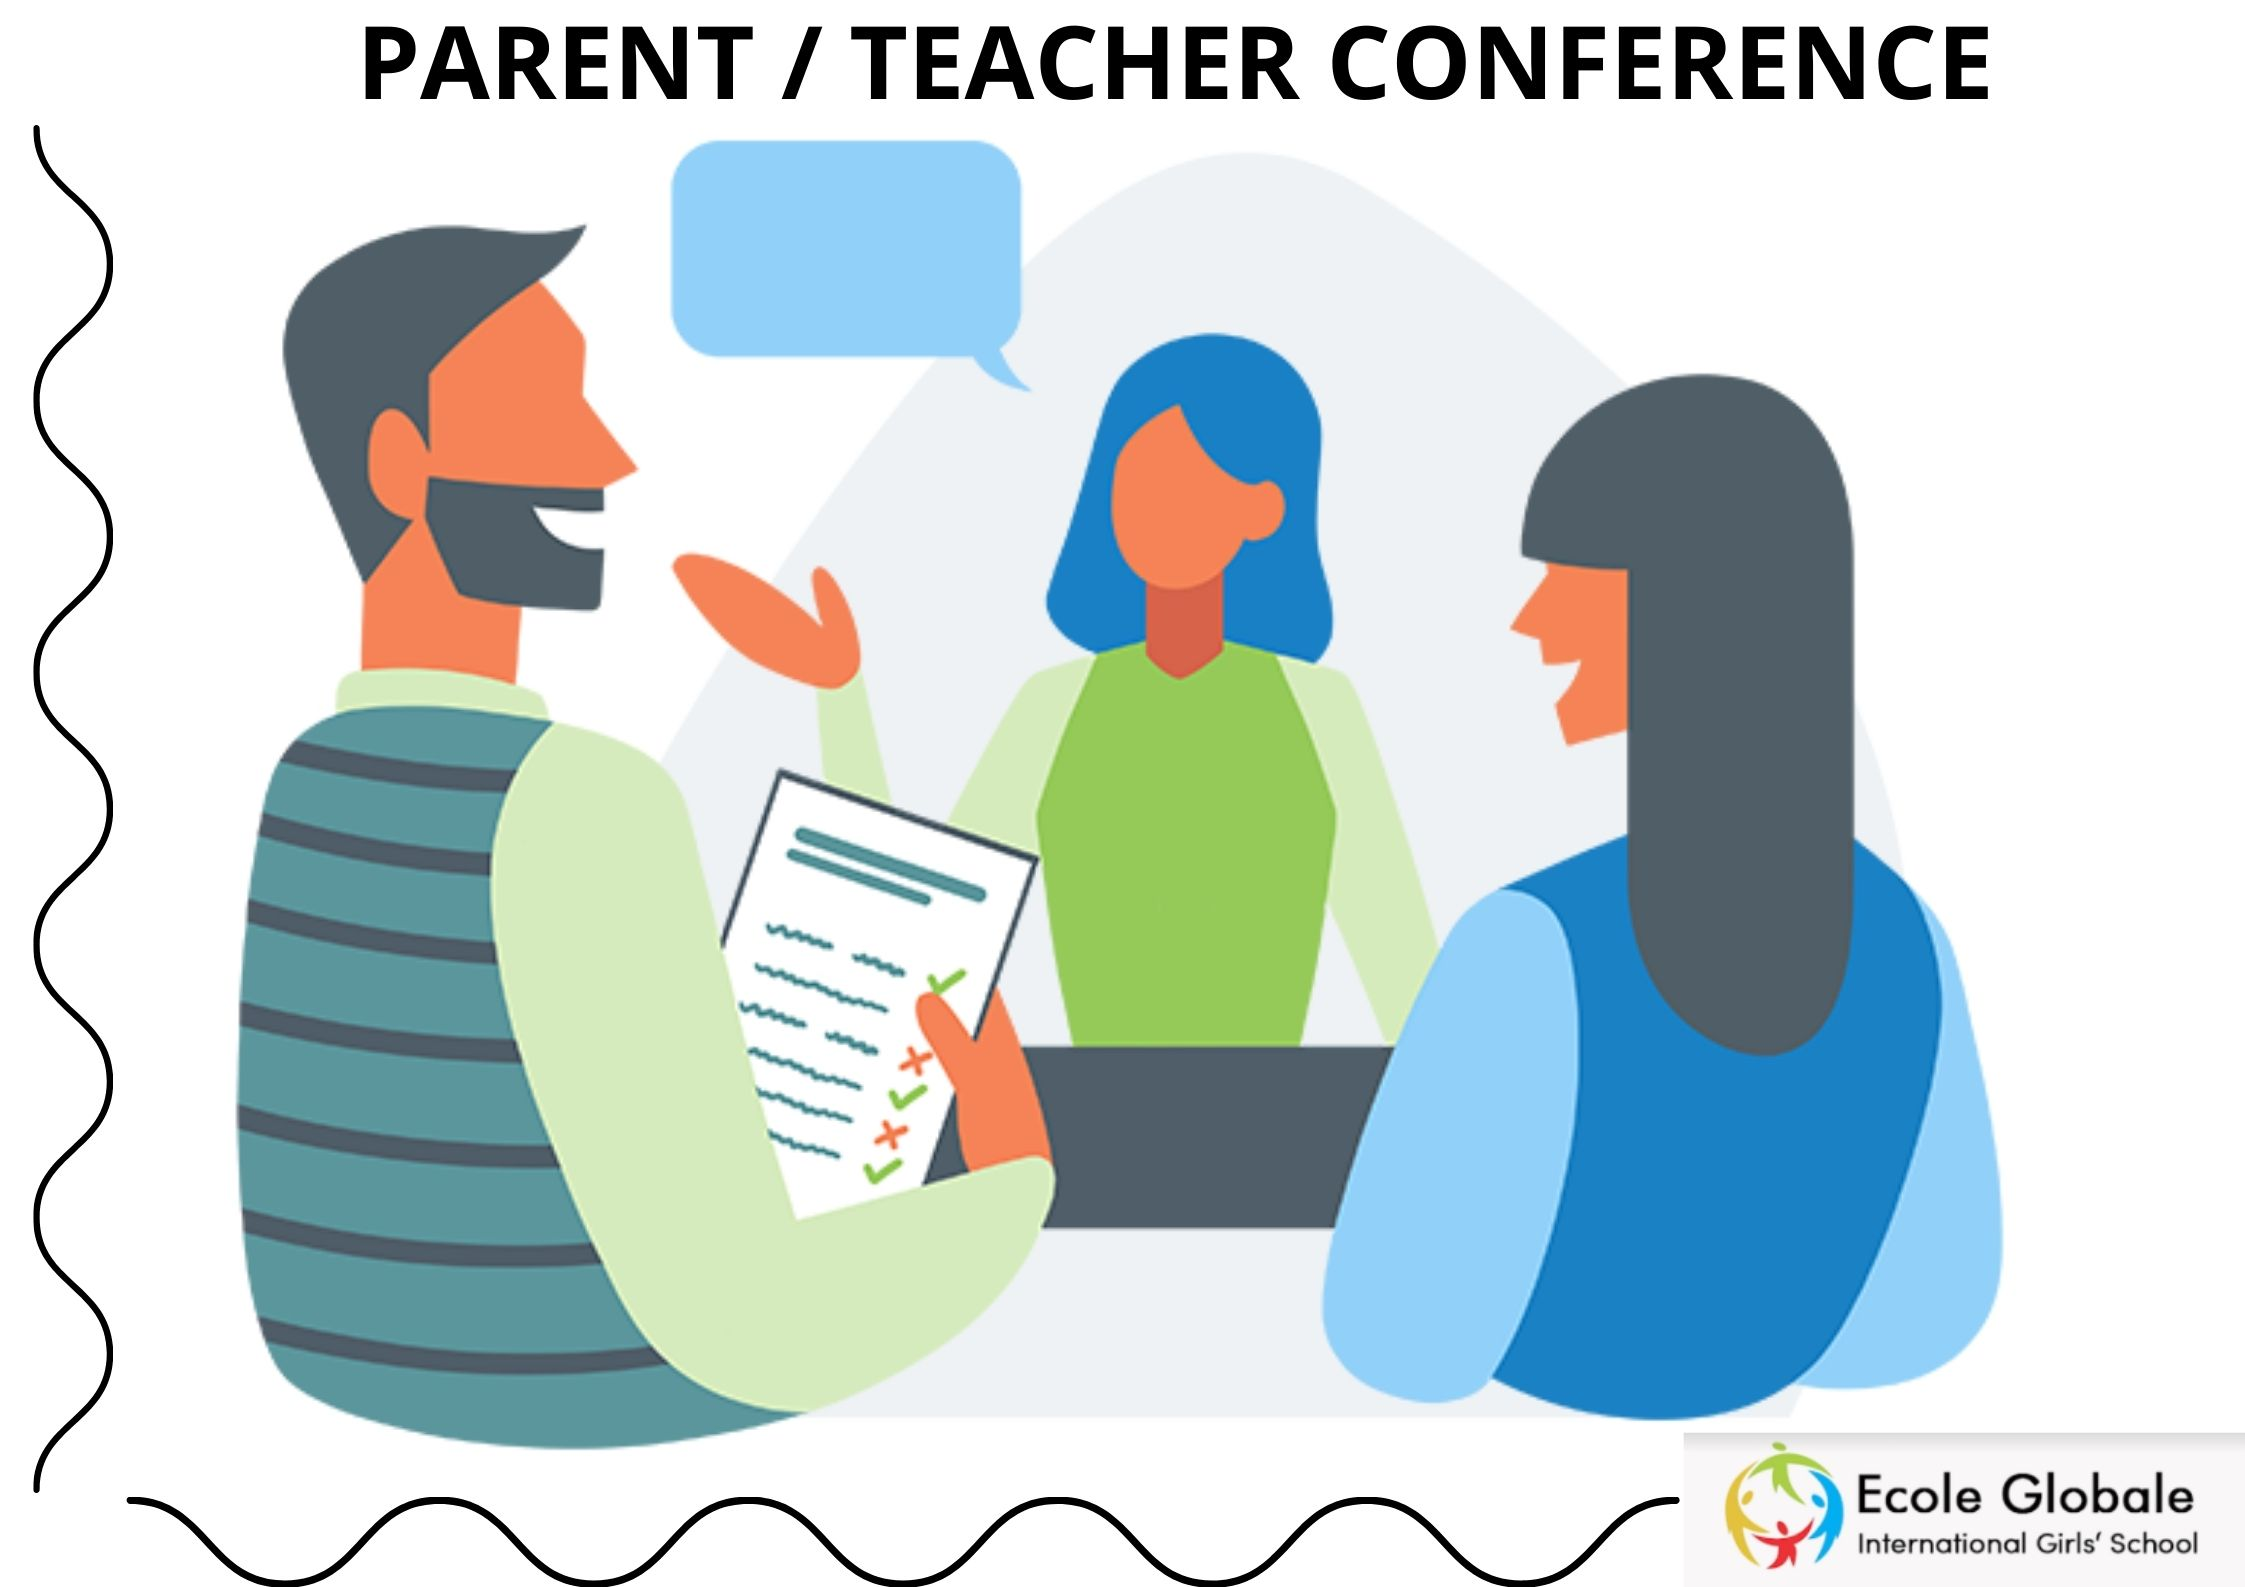 Getting the most out of parent-teacher conferences